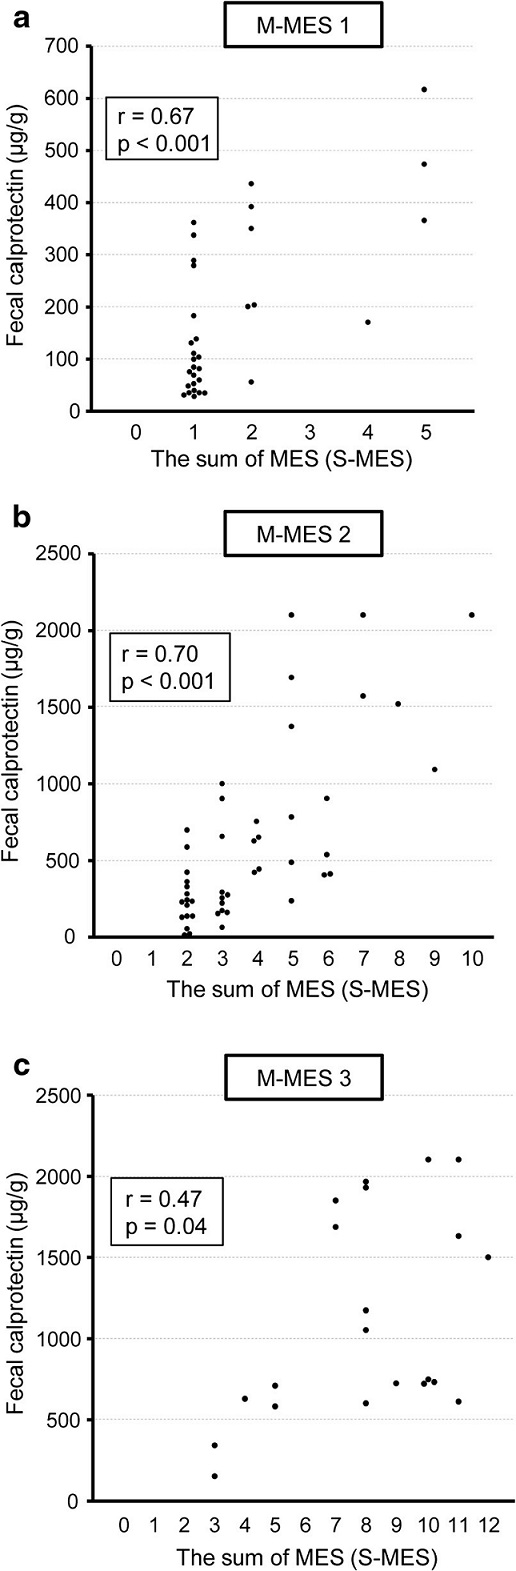 Scatterplot showing correlation of fecal calprotectin (FC) level with sum of Mayo endoscopic subscore for 5 colonic segments (S-MES) in patients with a maximum MES (M-MES) of 1, 2, and 3. a M-MES 1. b M-MES 2. c M-MES 3